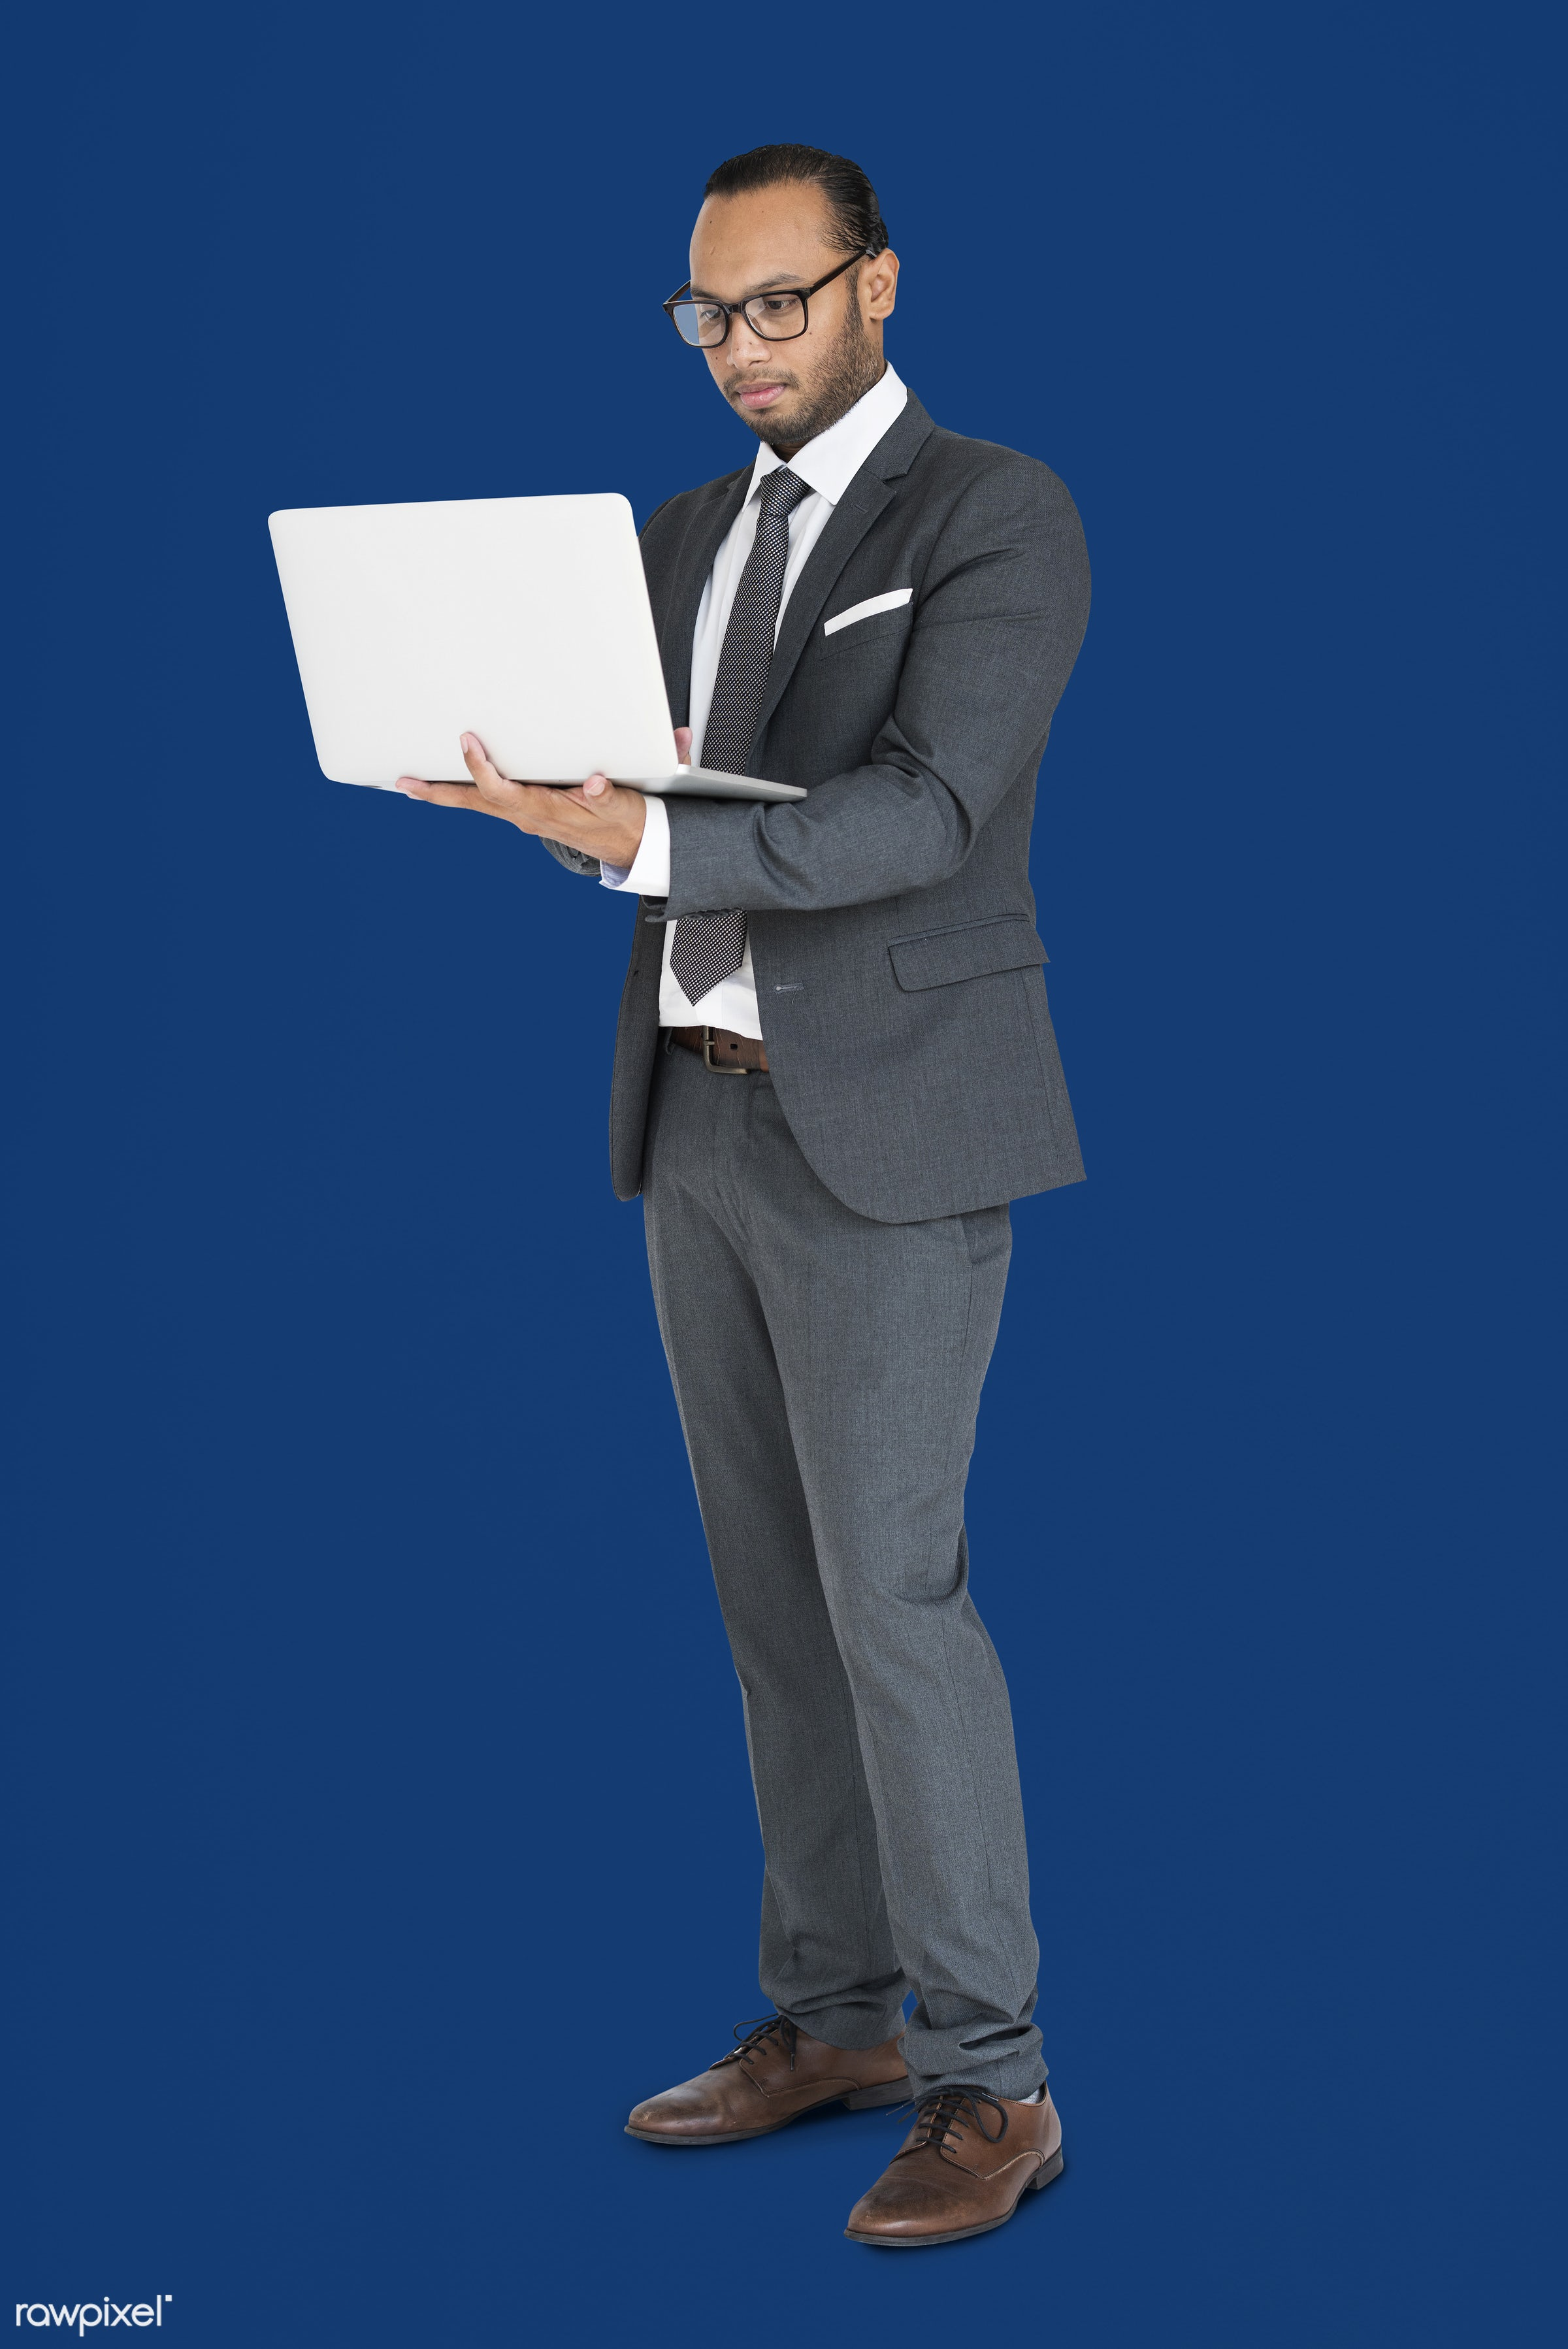 expression, studio, computer, person, using, model, full length, white collar worker, digital, race, people, business,...